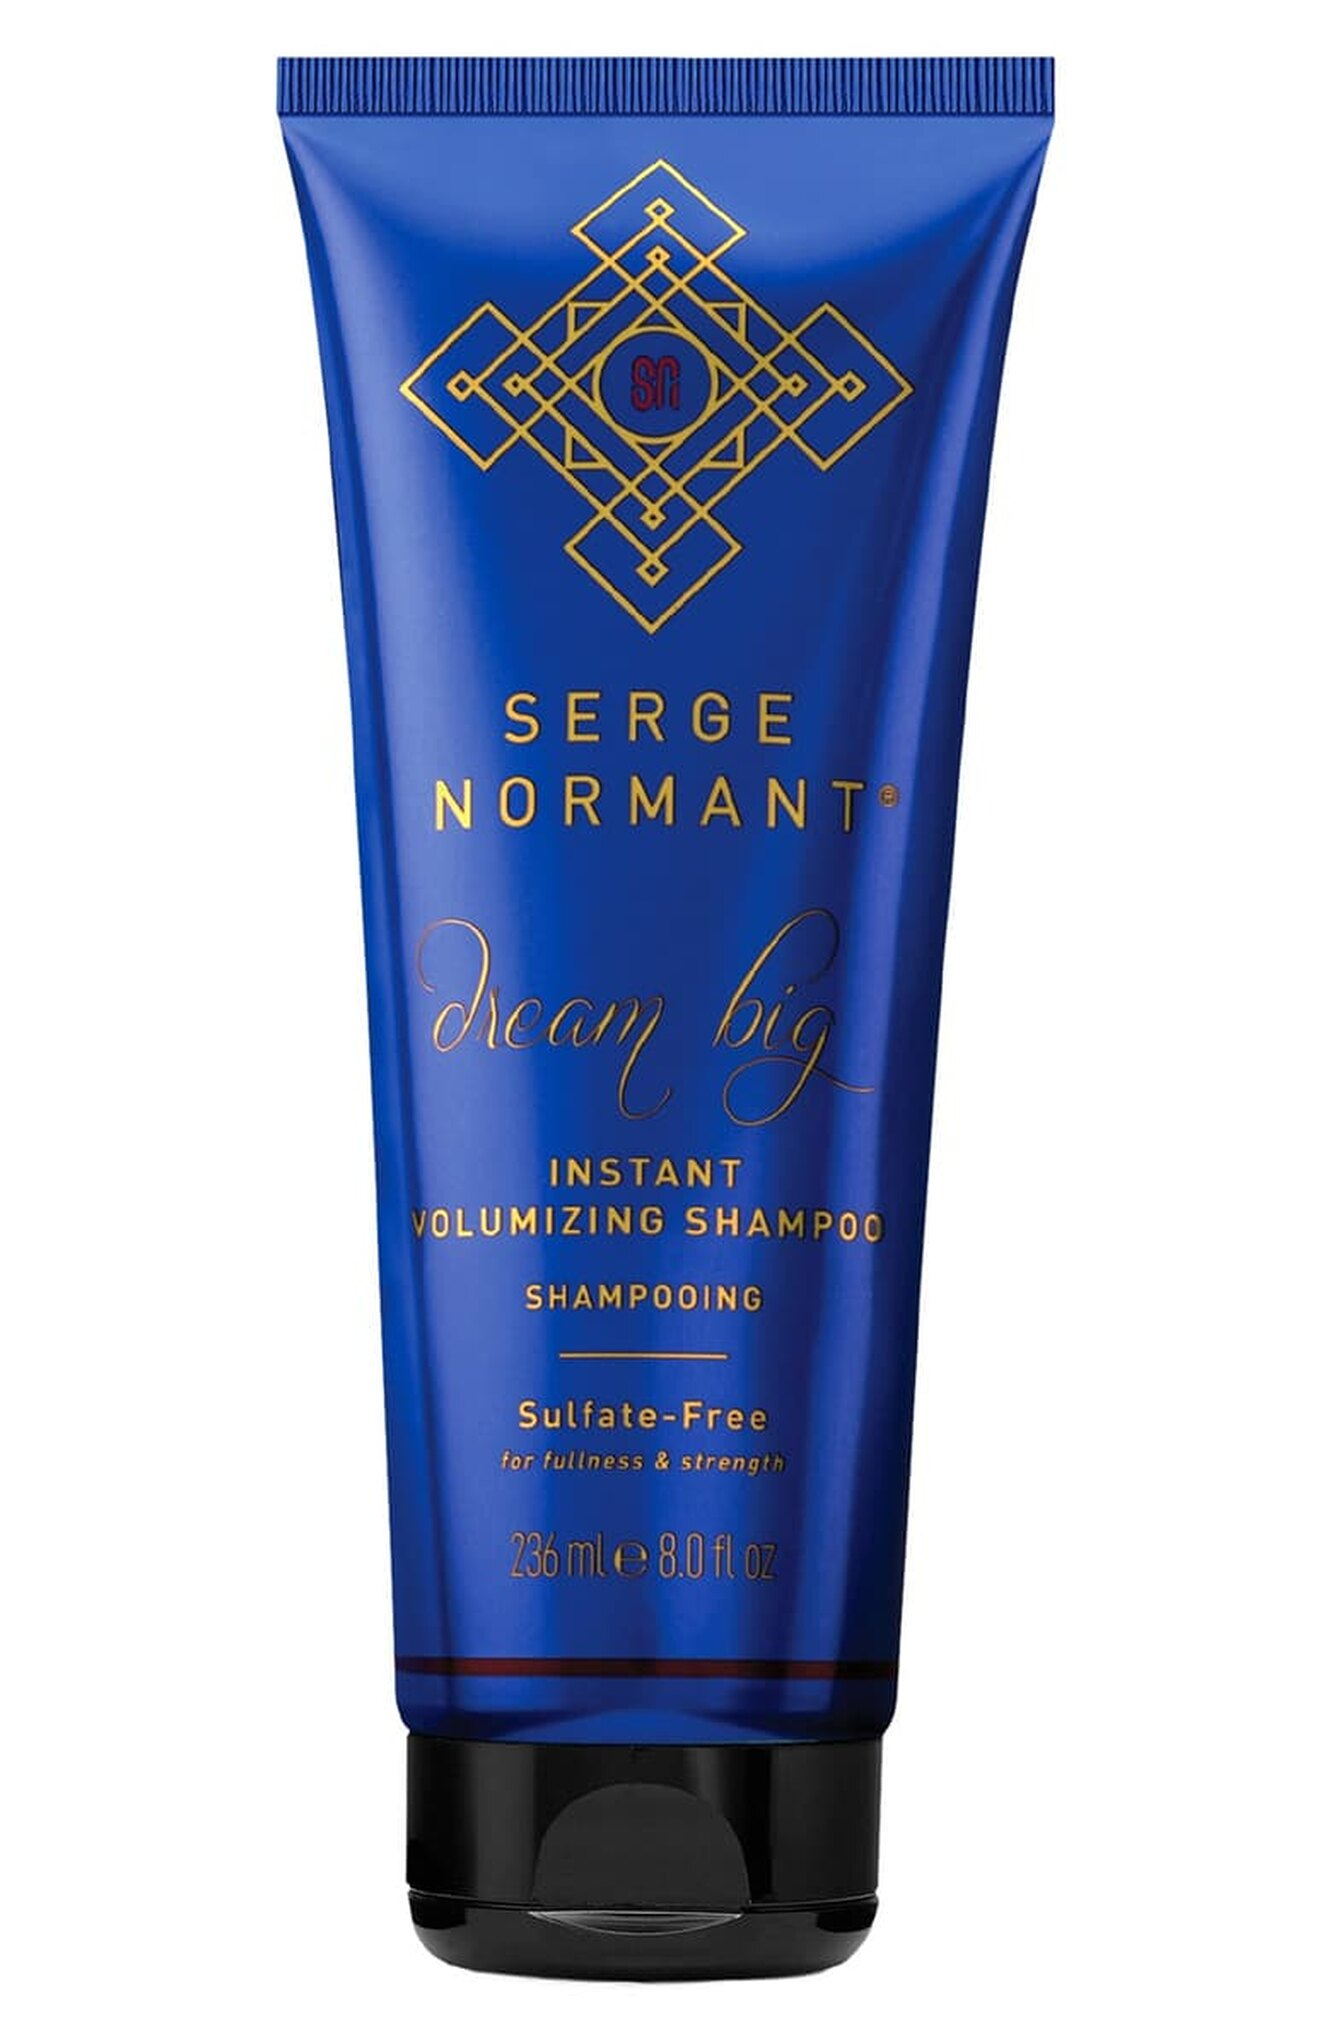 Dream Big Instant Volumizing Shampoo, Serge Normant, 1500 руб